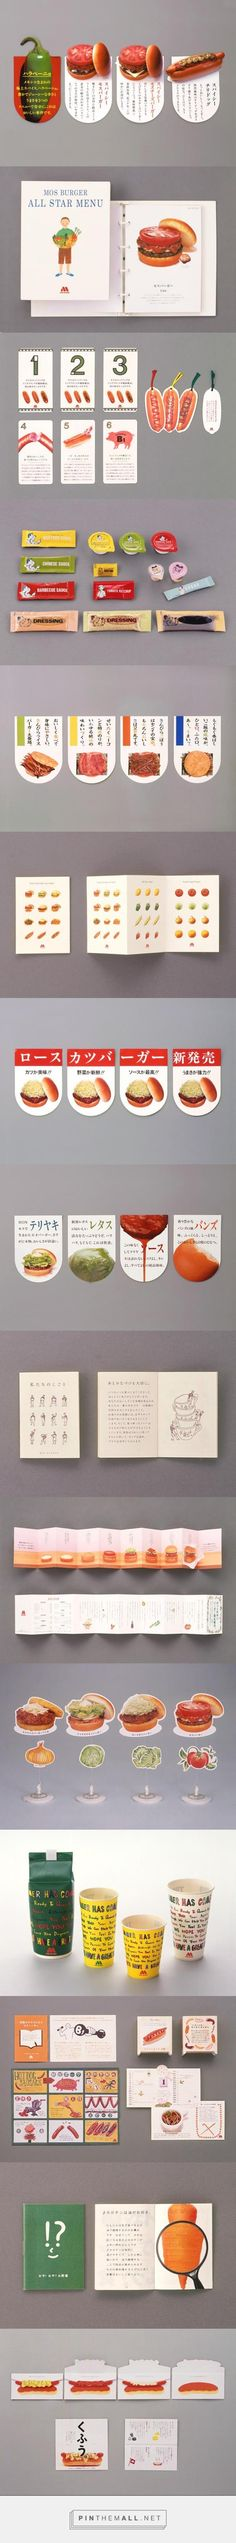 mos burger packaging looks awesome. who's had one? PD #加工 #店内ツール